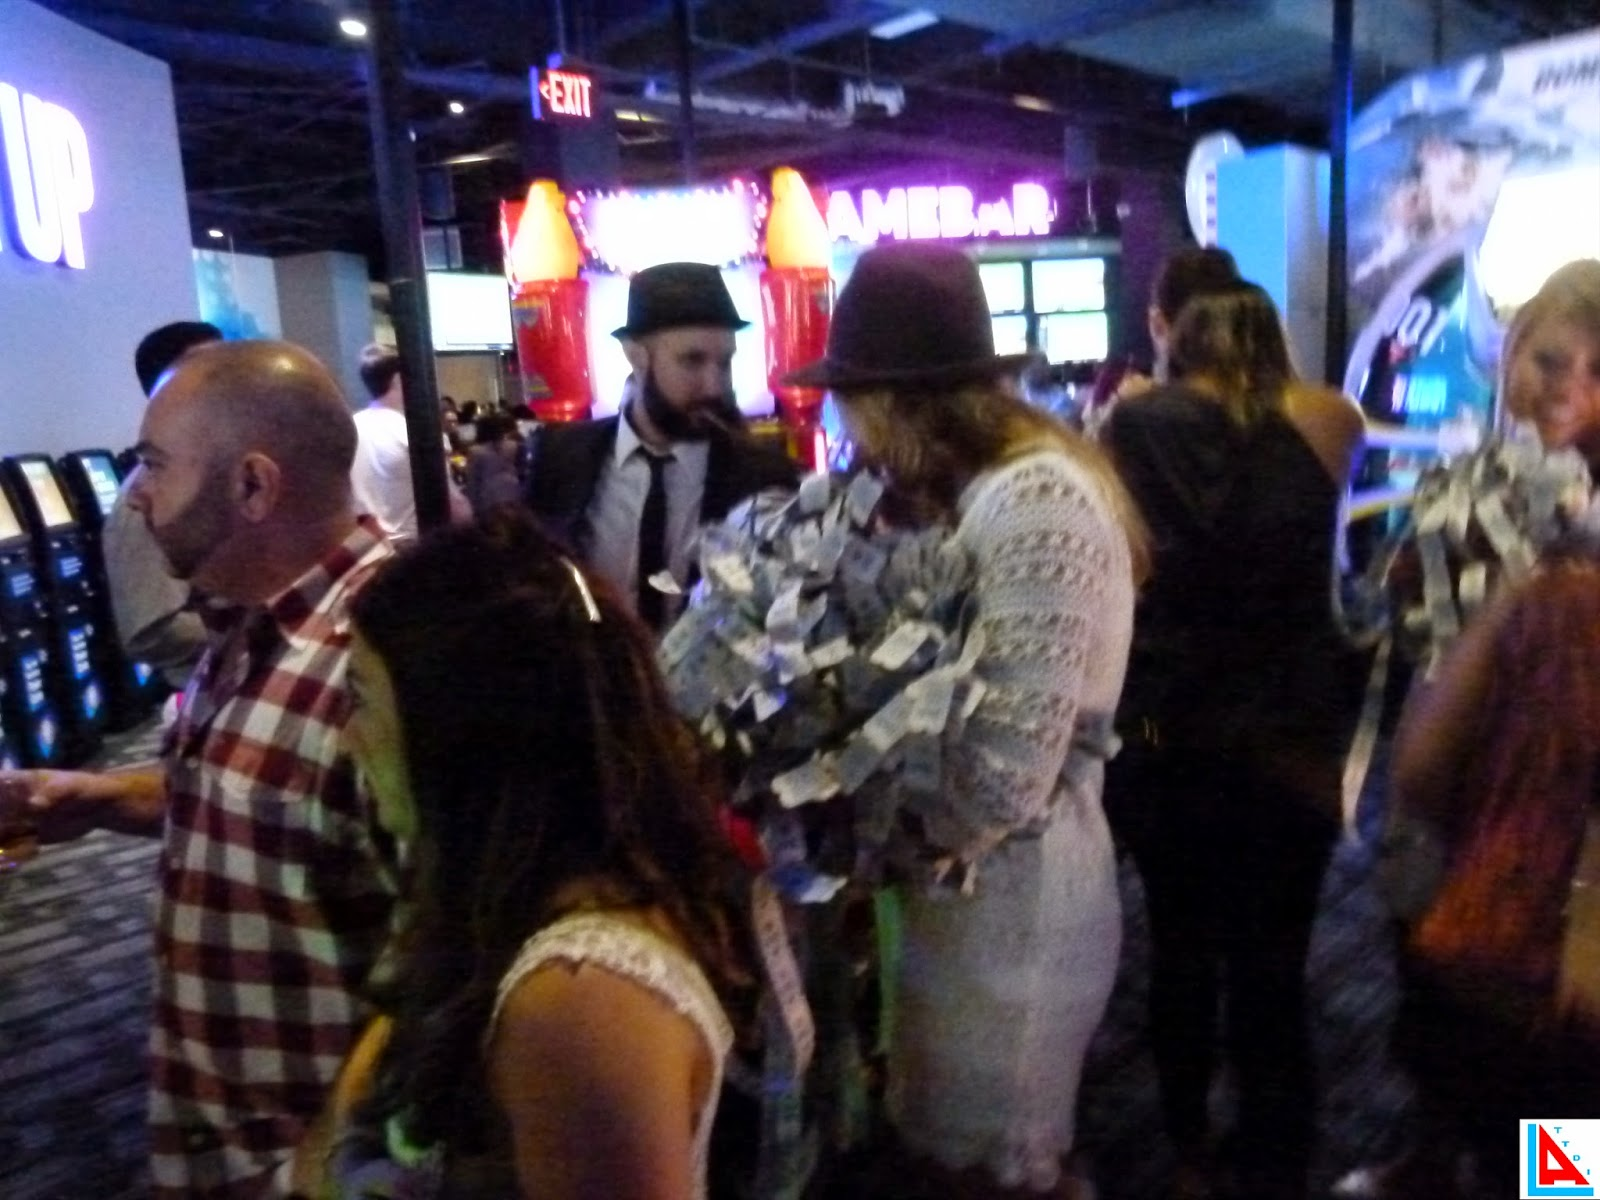 Dave and busters printable coupons january 2013 - One Of The Machines Playable Was Used For Gundam Games In Japan With A 360 Like Degree View Dome Screen Doghfight Mach Storm Has You In The Air In As A